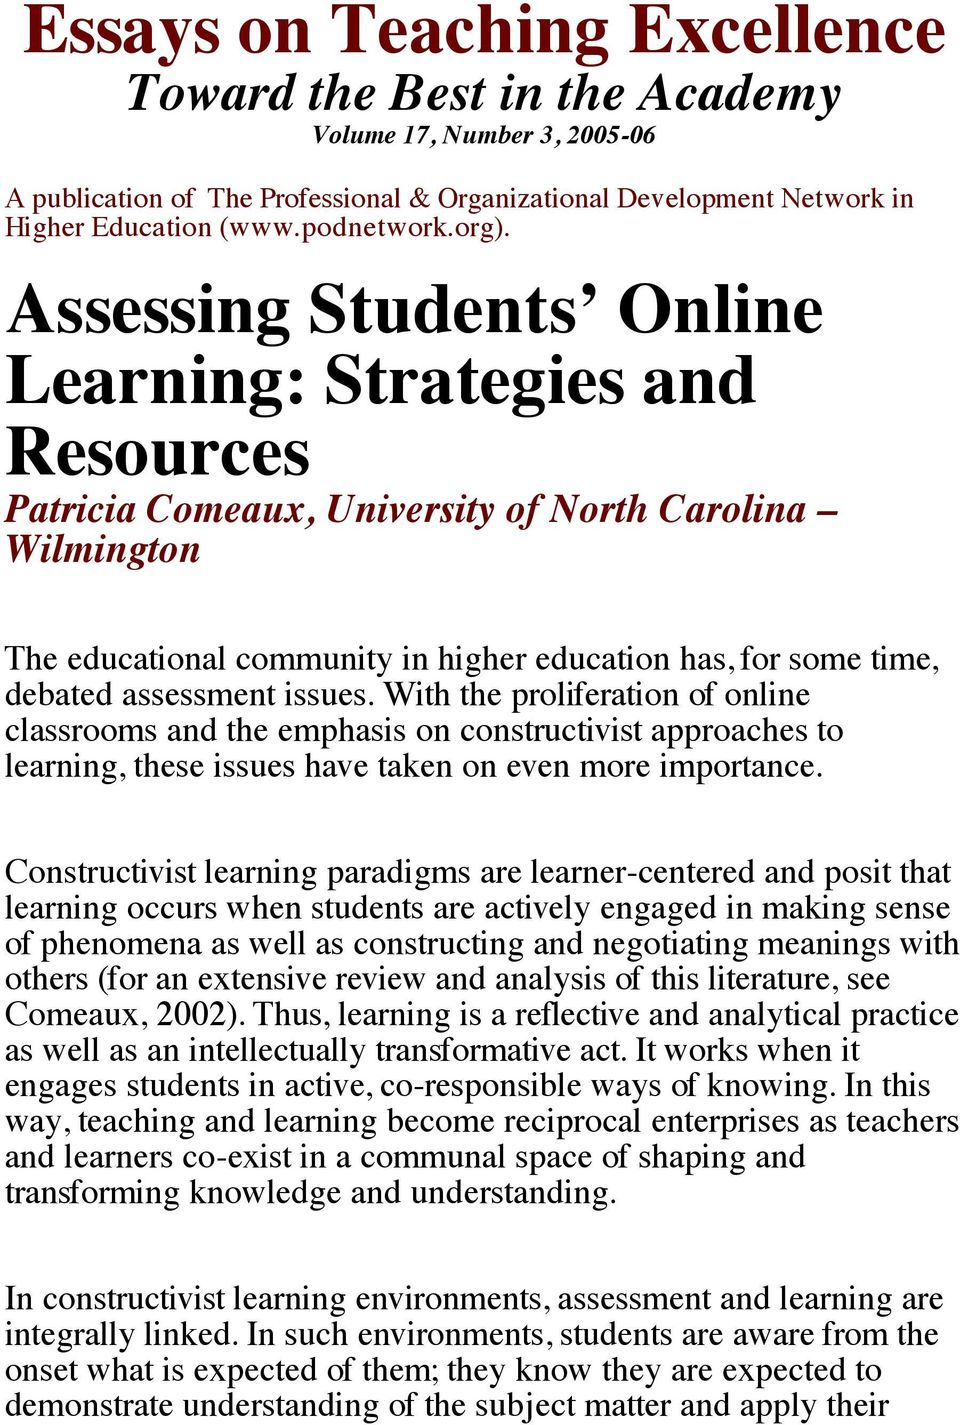 assessment issues. With the proliferation of online classrooms and the emphasis on constructivist approaches to learning, these issues have taken on even more importance.